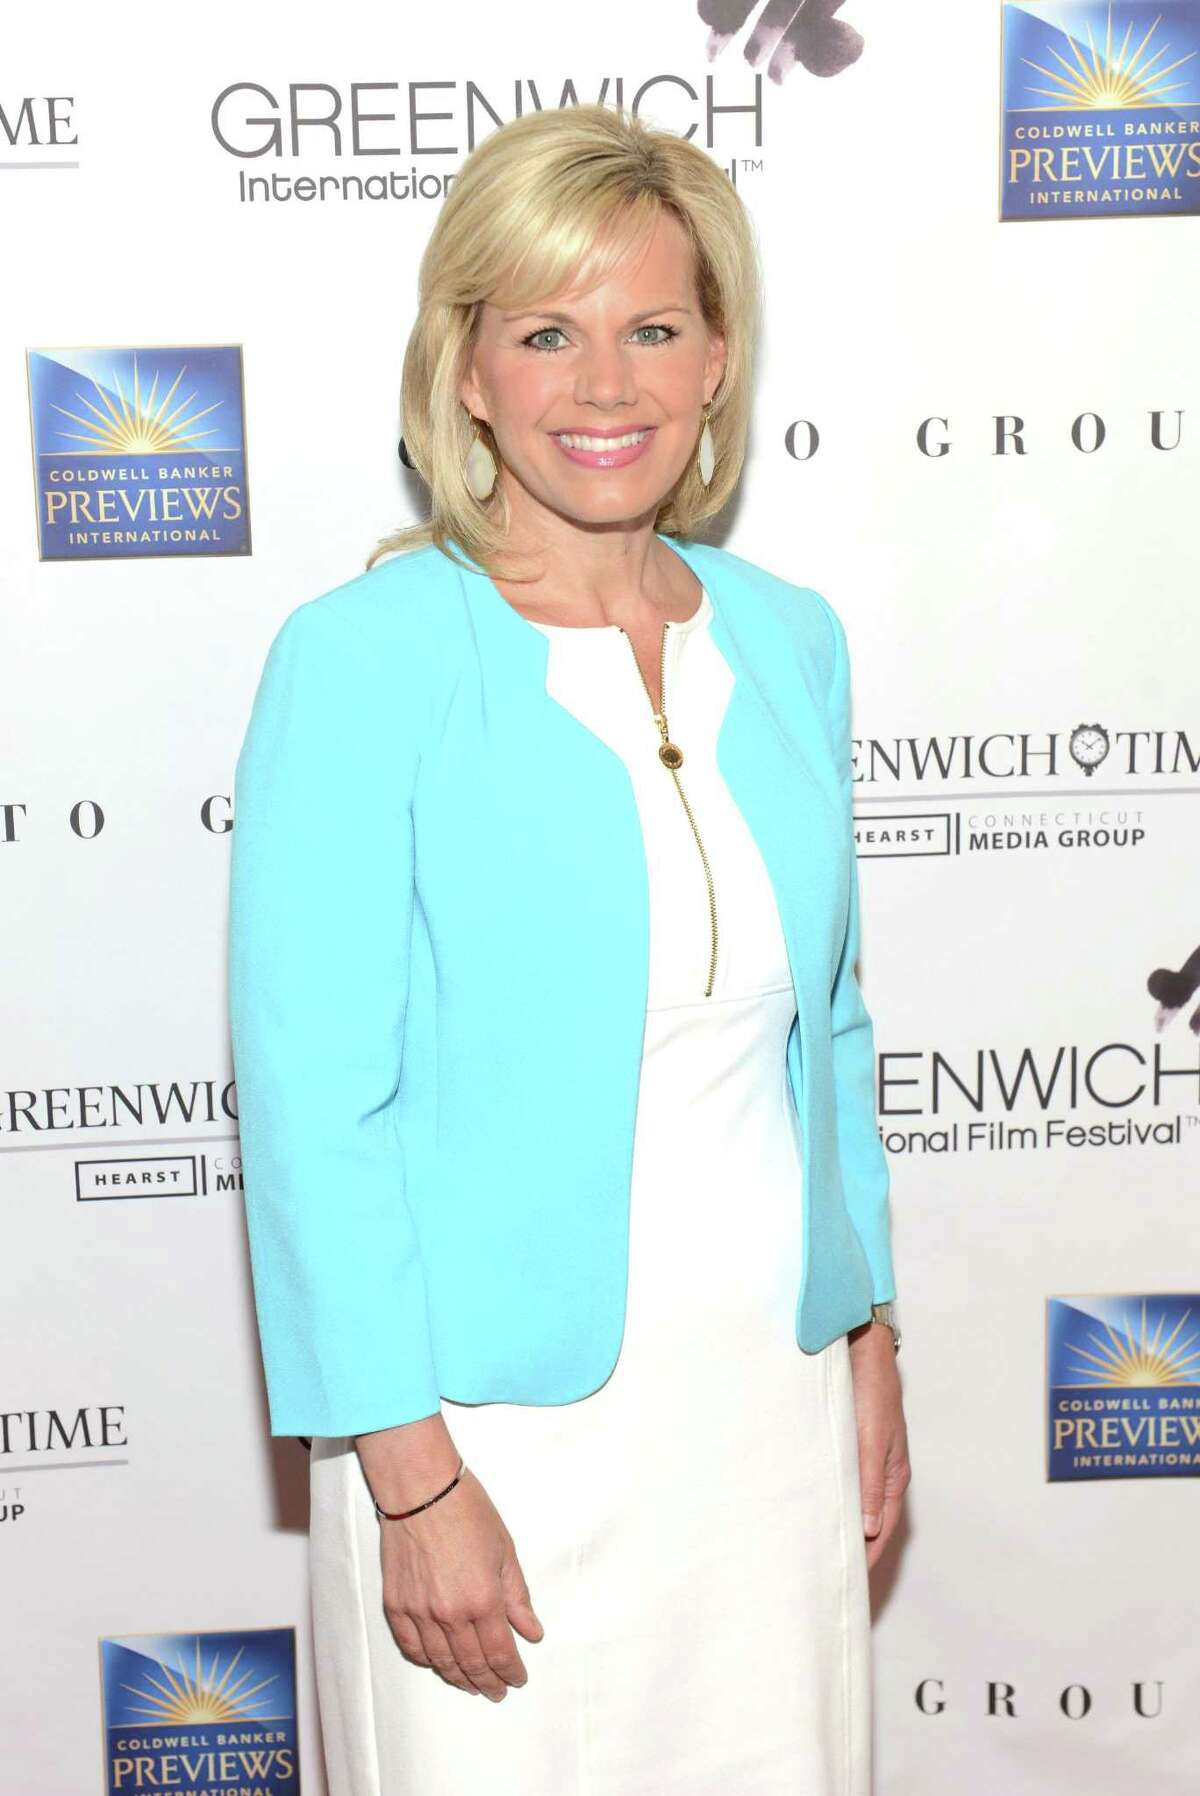 Gretchen Carlson attends Women at the Top: Female Empowerment in Media Panel at the 2016 Greenwich International Film Festival on June 12, 2016 in Greenwich, Connecticut.